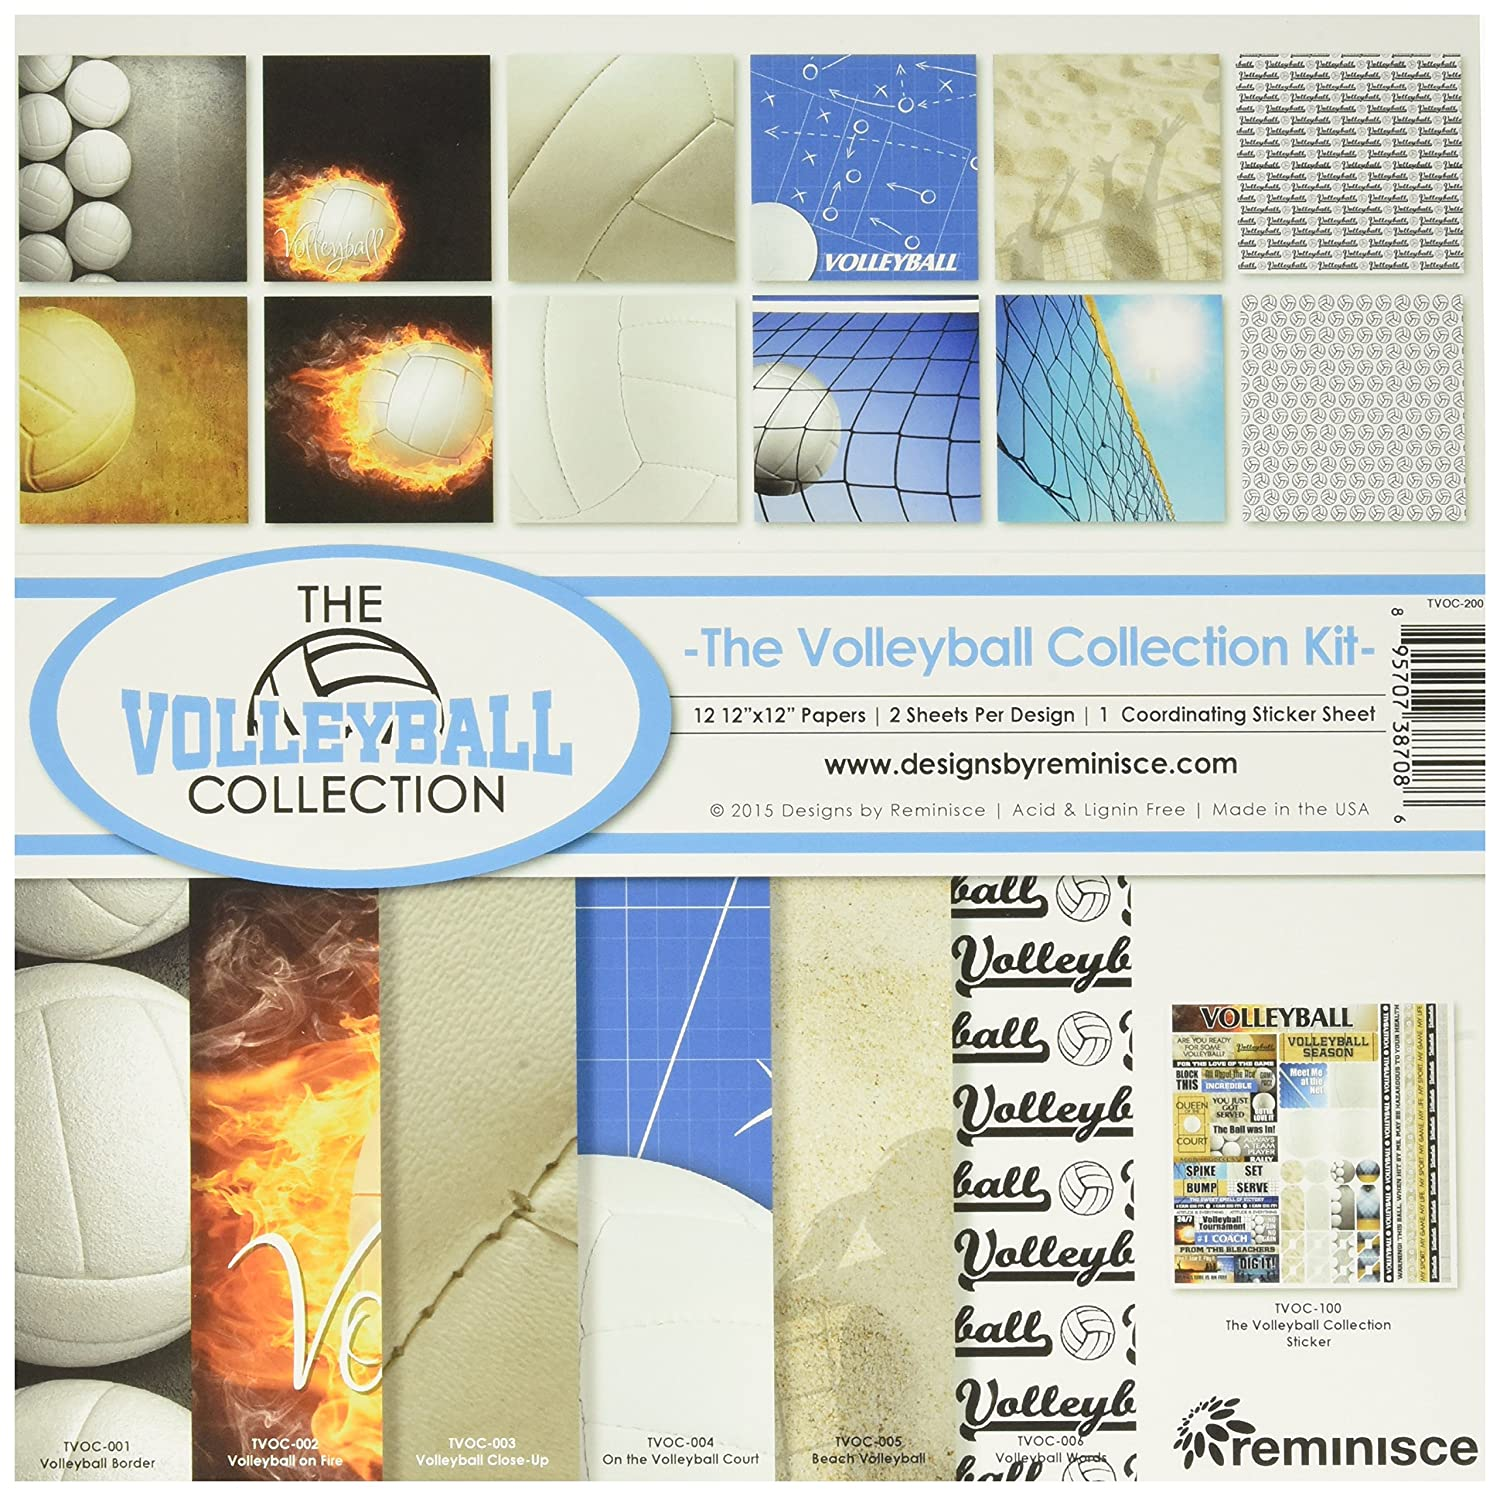 Reminisce The Volleyball Collection Kit